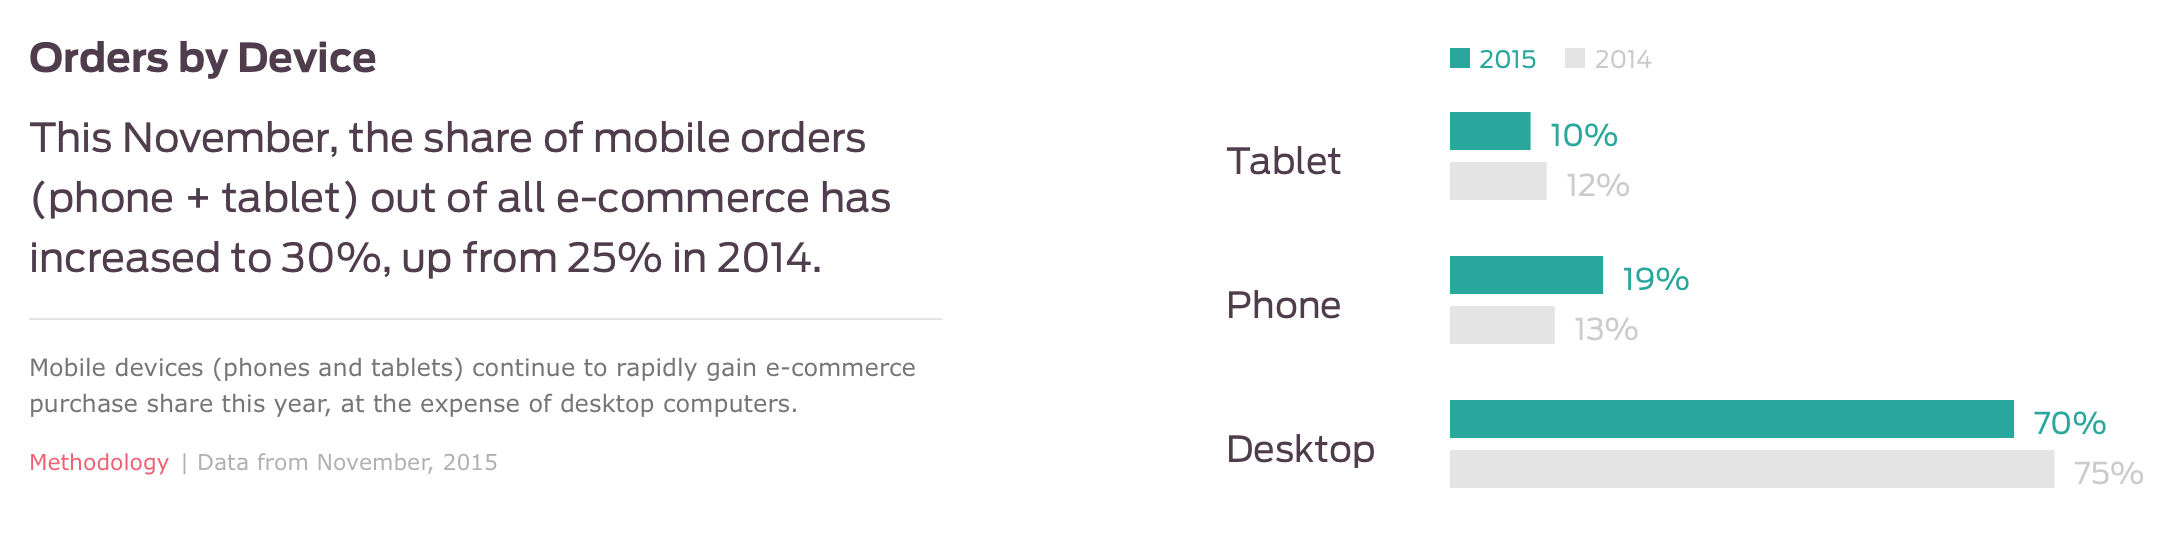 online shopping by device desktop vs mobile